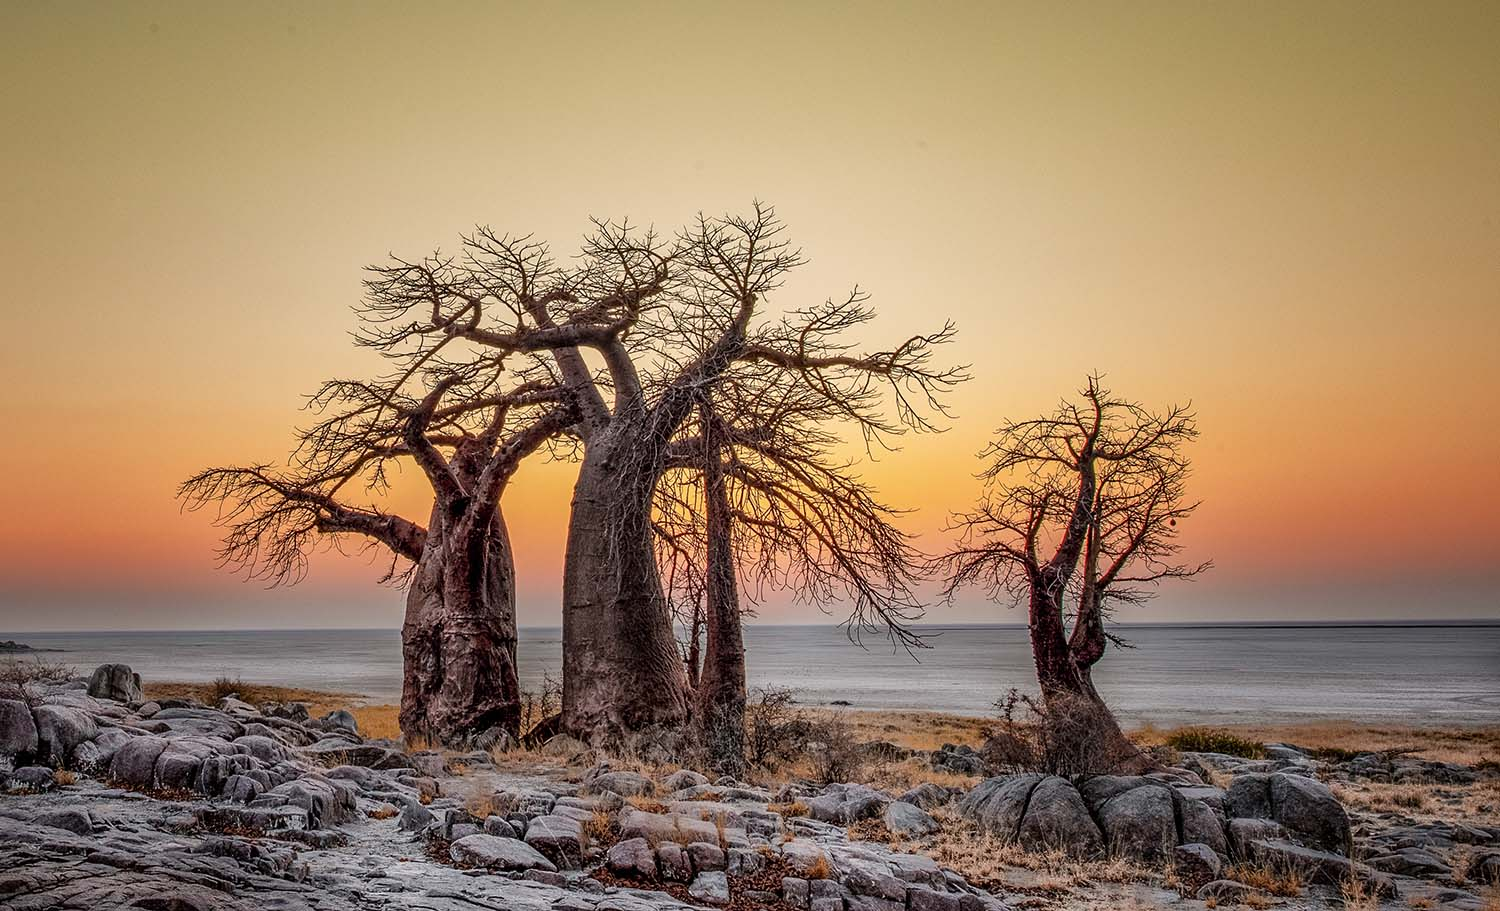 Africa Photo Awards 2020 Celebrates Stunning Images from the Continent